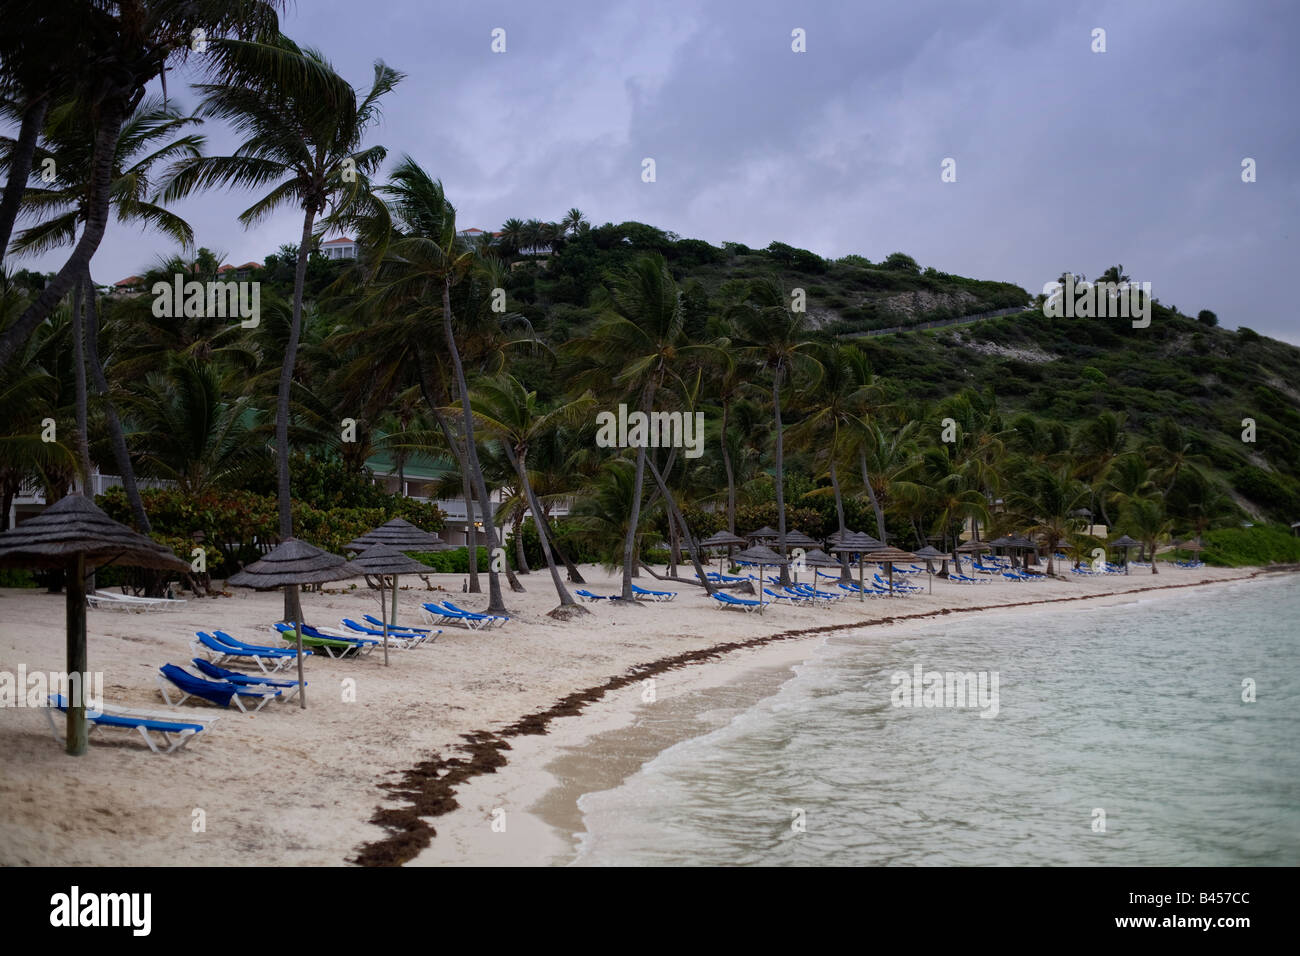 A deserted beach at the St James's Club Hotel on the Carribean island of Antigua as a tropical storm approaches - Stock Image